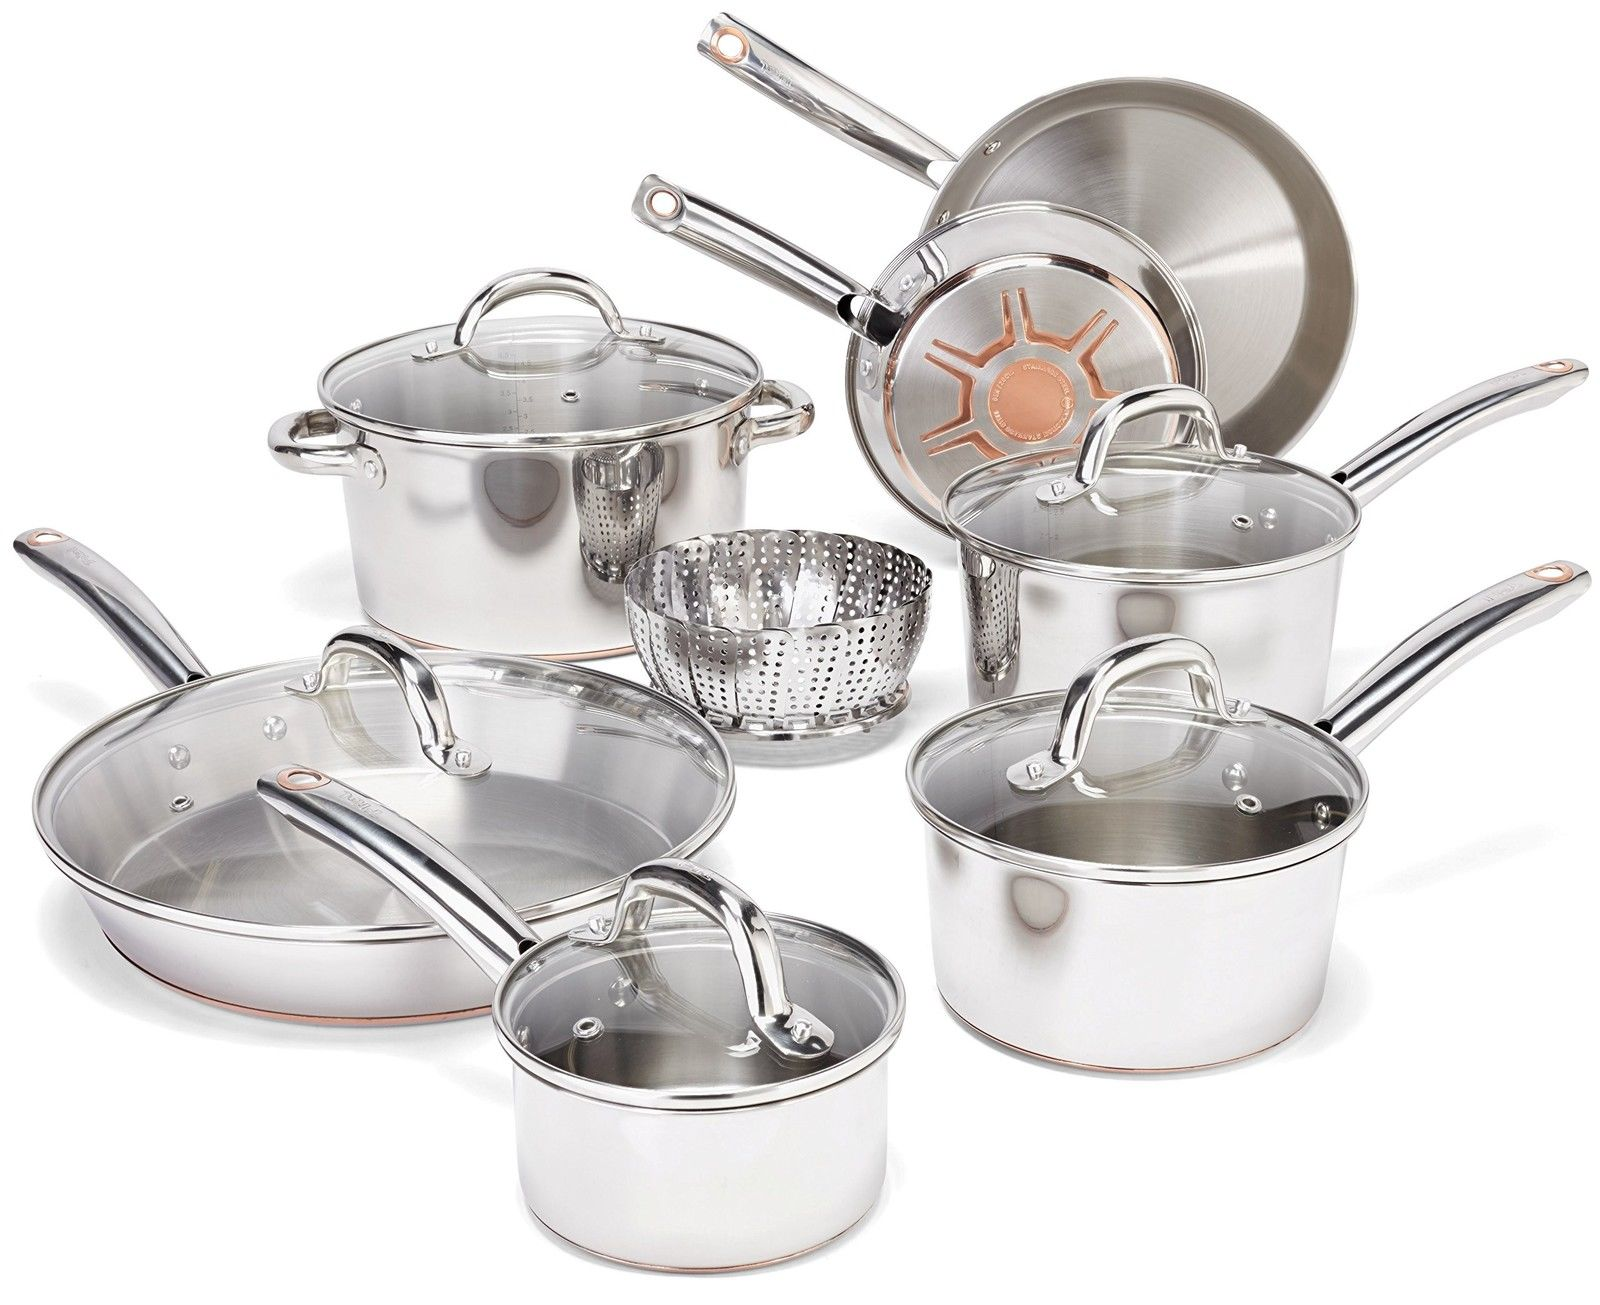 T Fal C836sc Ultimate Stainless Steel Copper Bottom Cookware Set